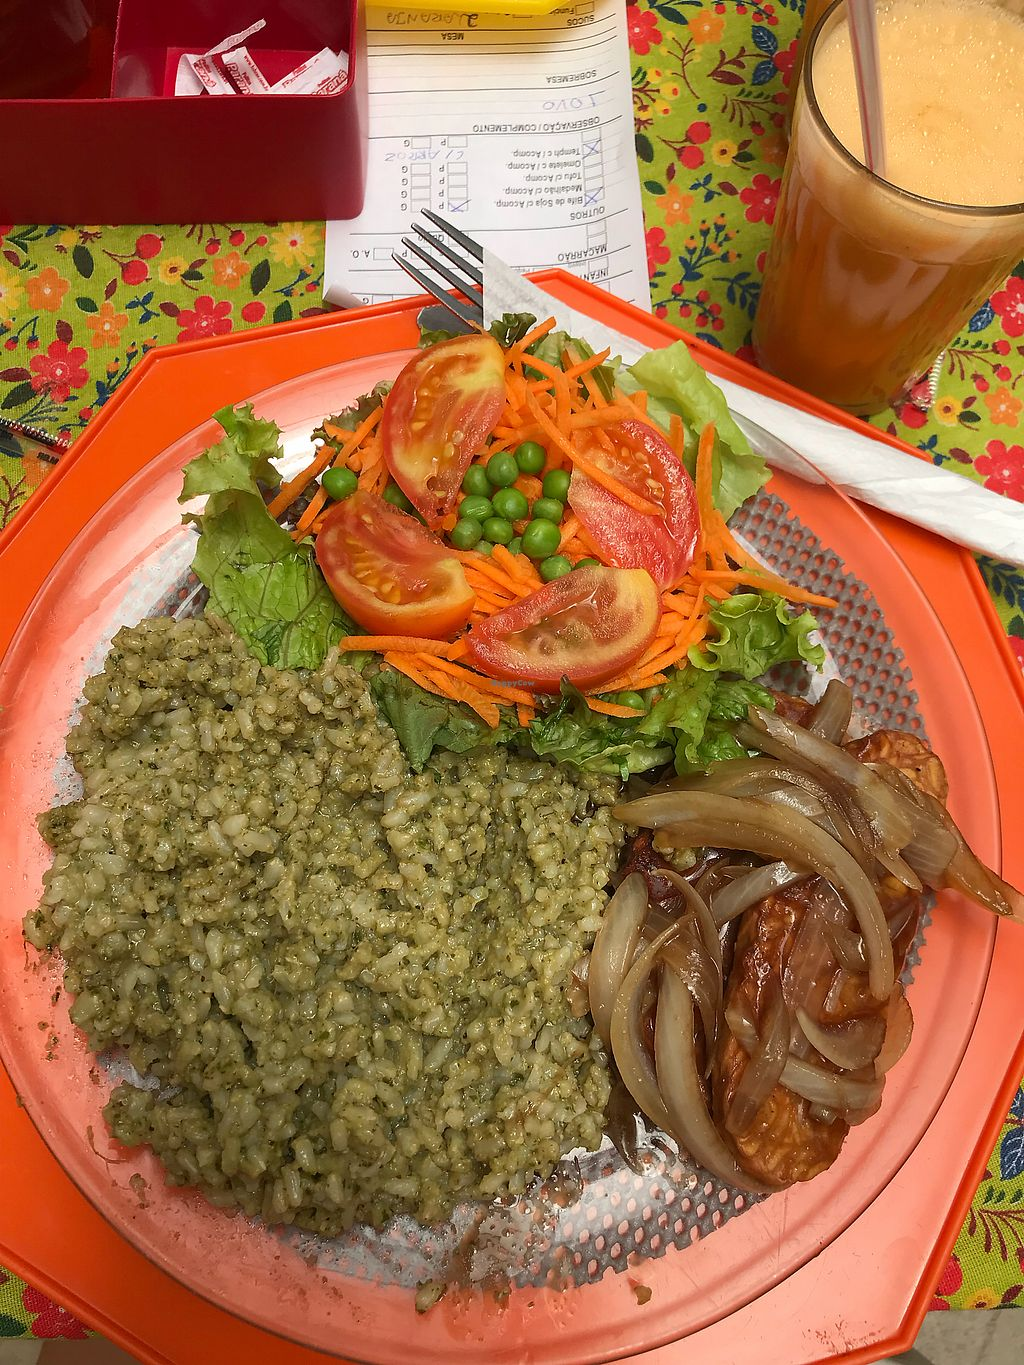 "Photo of Nascente um Gosto de Sol  by <a href=""/members/profile/bi1405"">bi1405</a> <br/>Rice and pesto, salad and tempeh  <br/> January 25, 2018  - <a href='/contact/abuse/image/46621/350645'>Report</a>"